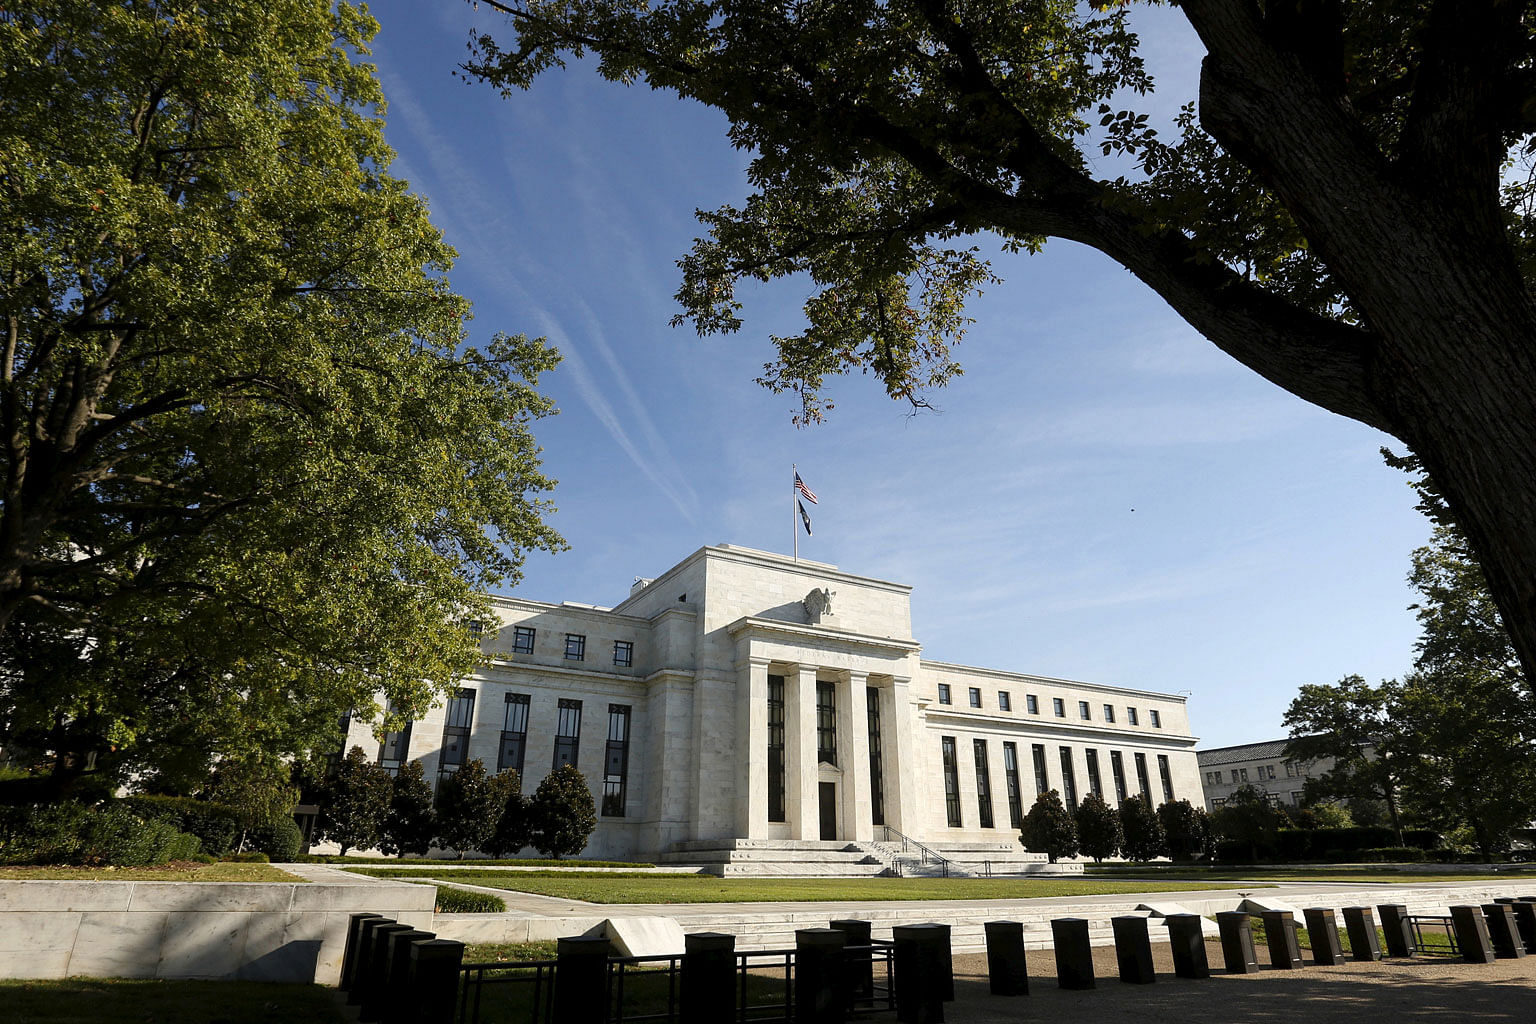 The Federal Reserve headquarters in Washington. UBS now expects the Fed to hike interest rates four times in 2018 (from three) and three times in 2019 (from two), taking the Fed fund target rate to just over 3 per cent by end-2019.